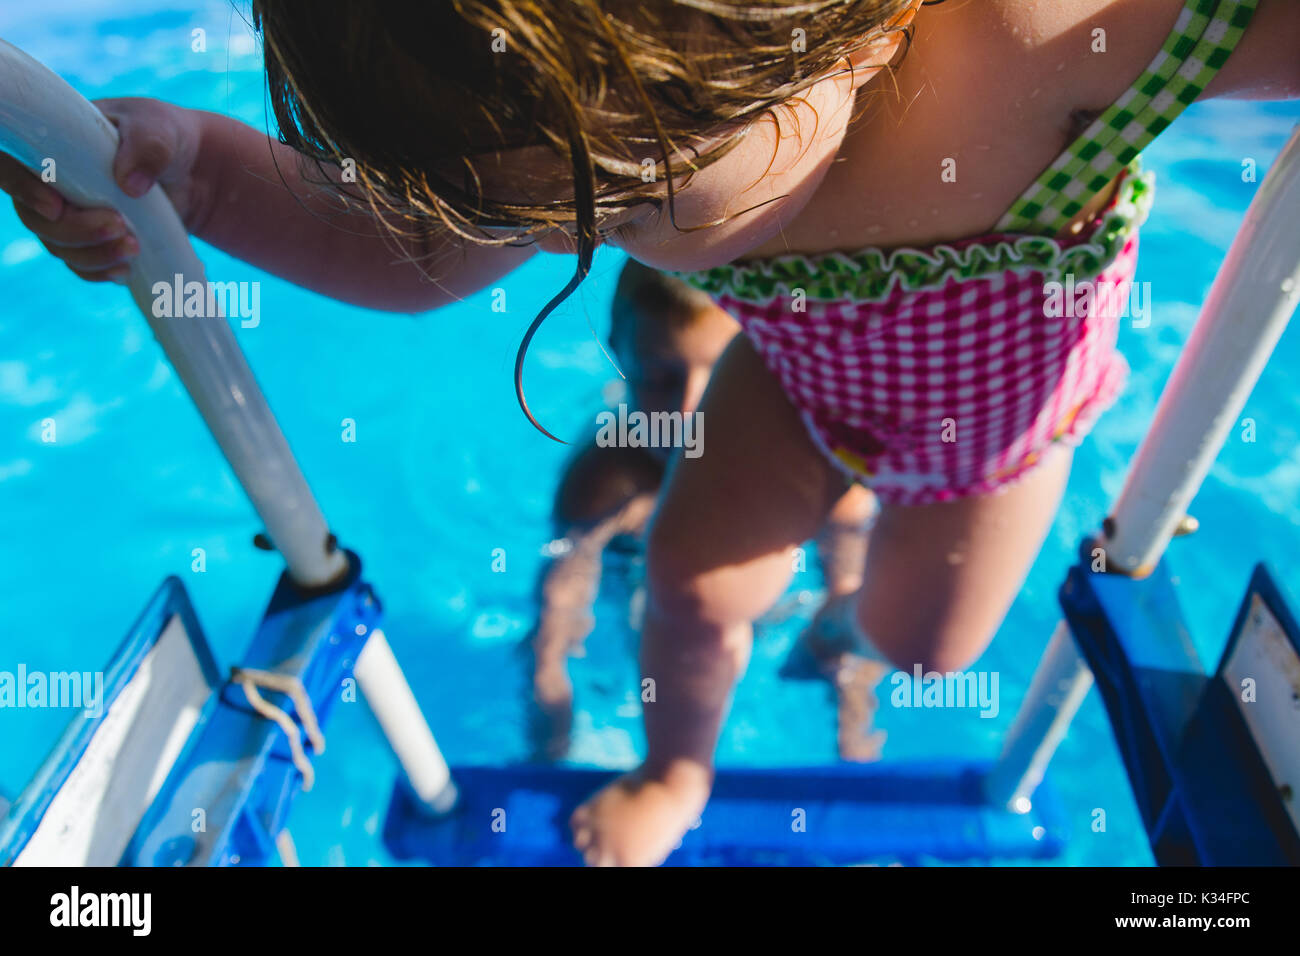 A young girl climbs out of a swimming pool during  the summer. - Stock Image